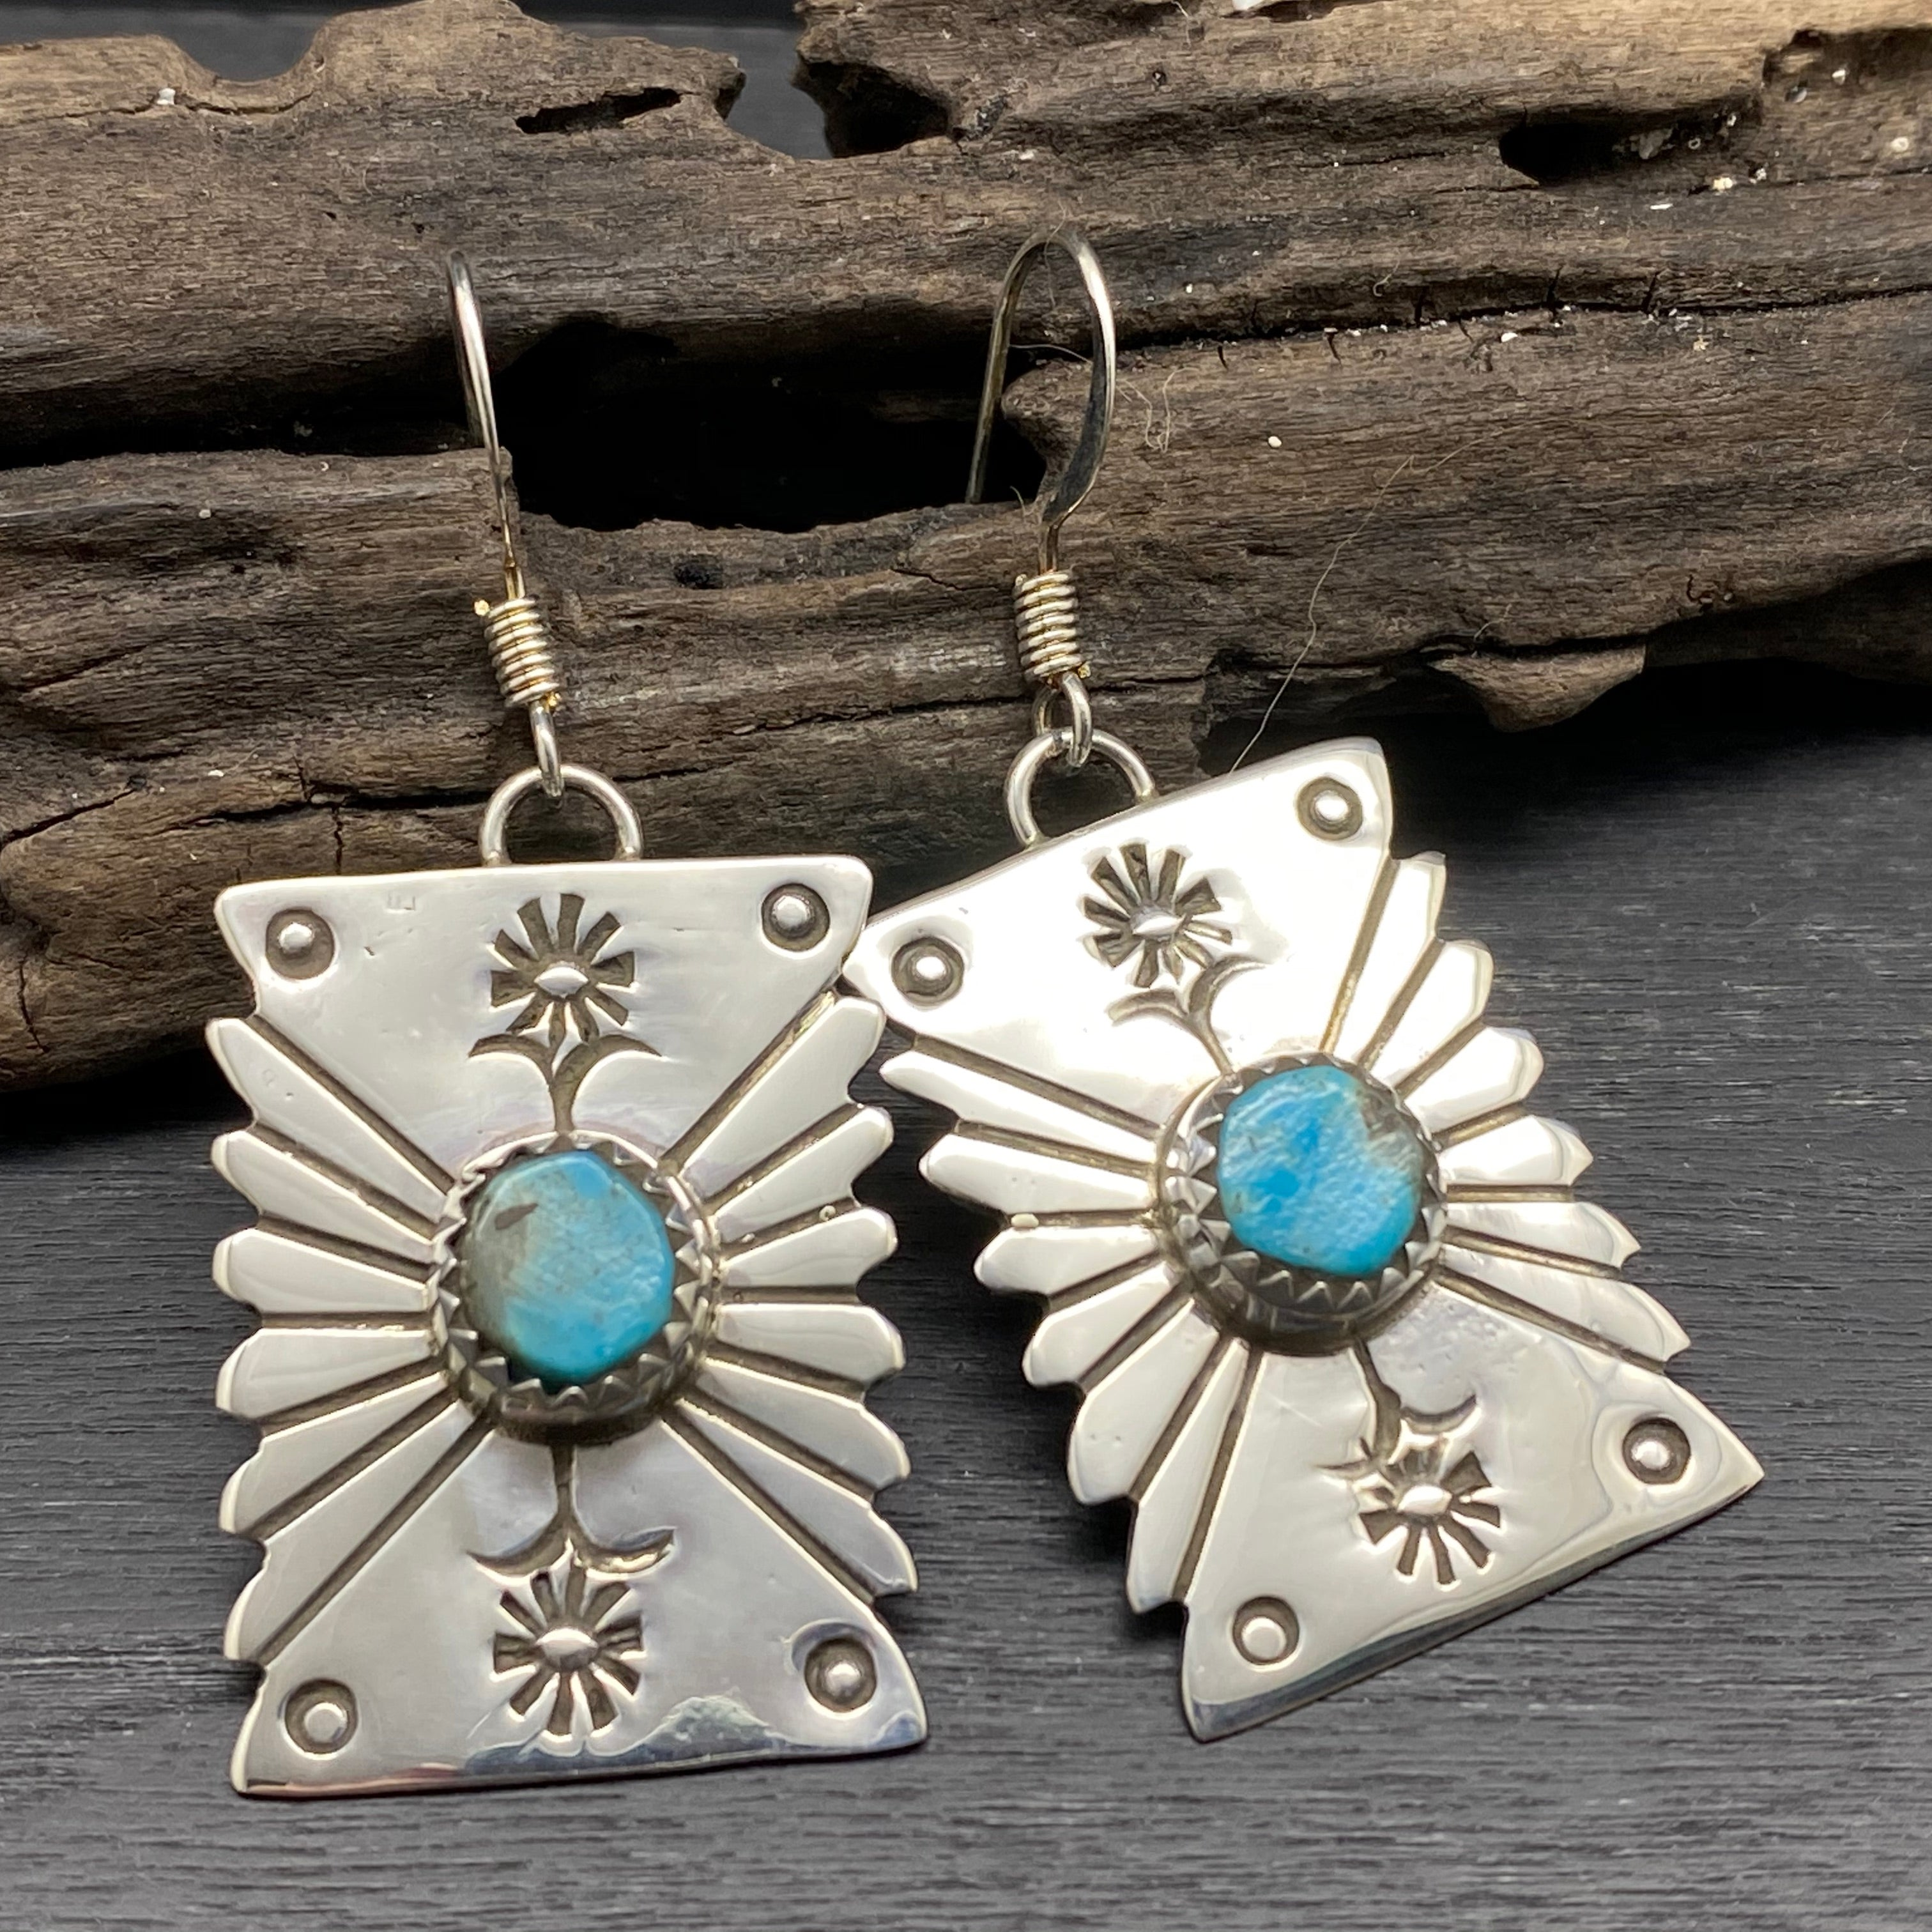 Sterling Silver Stamped Statement Earrings With Turquoise by Navajo Artist